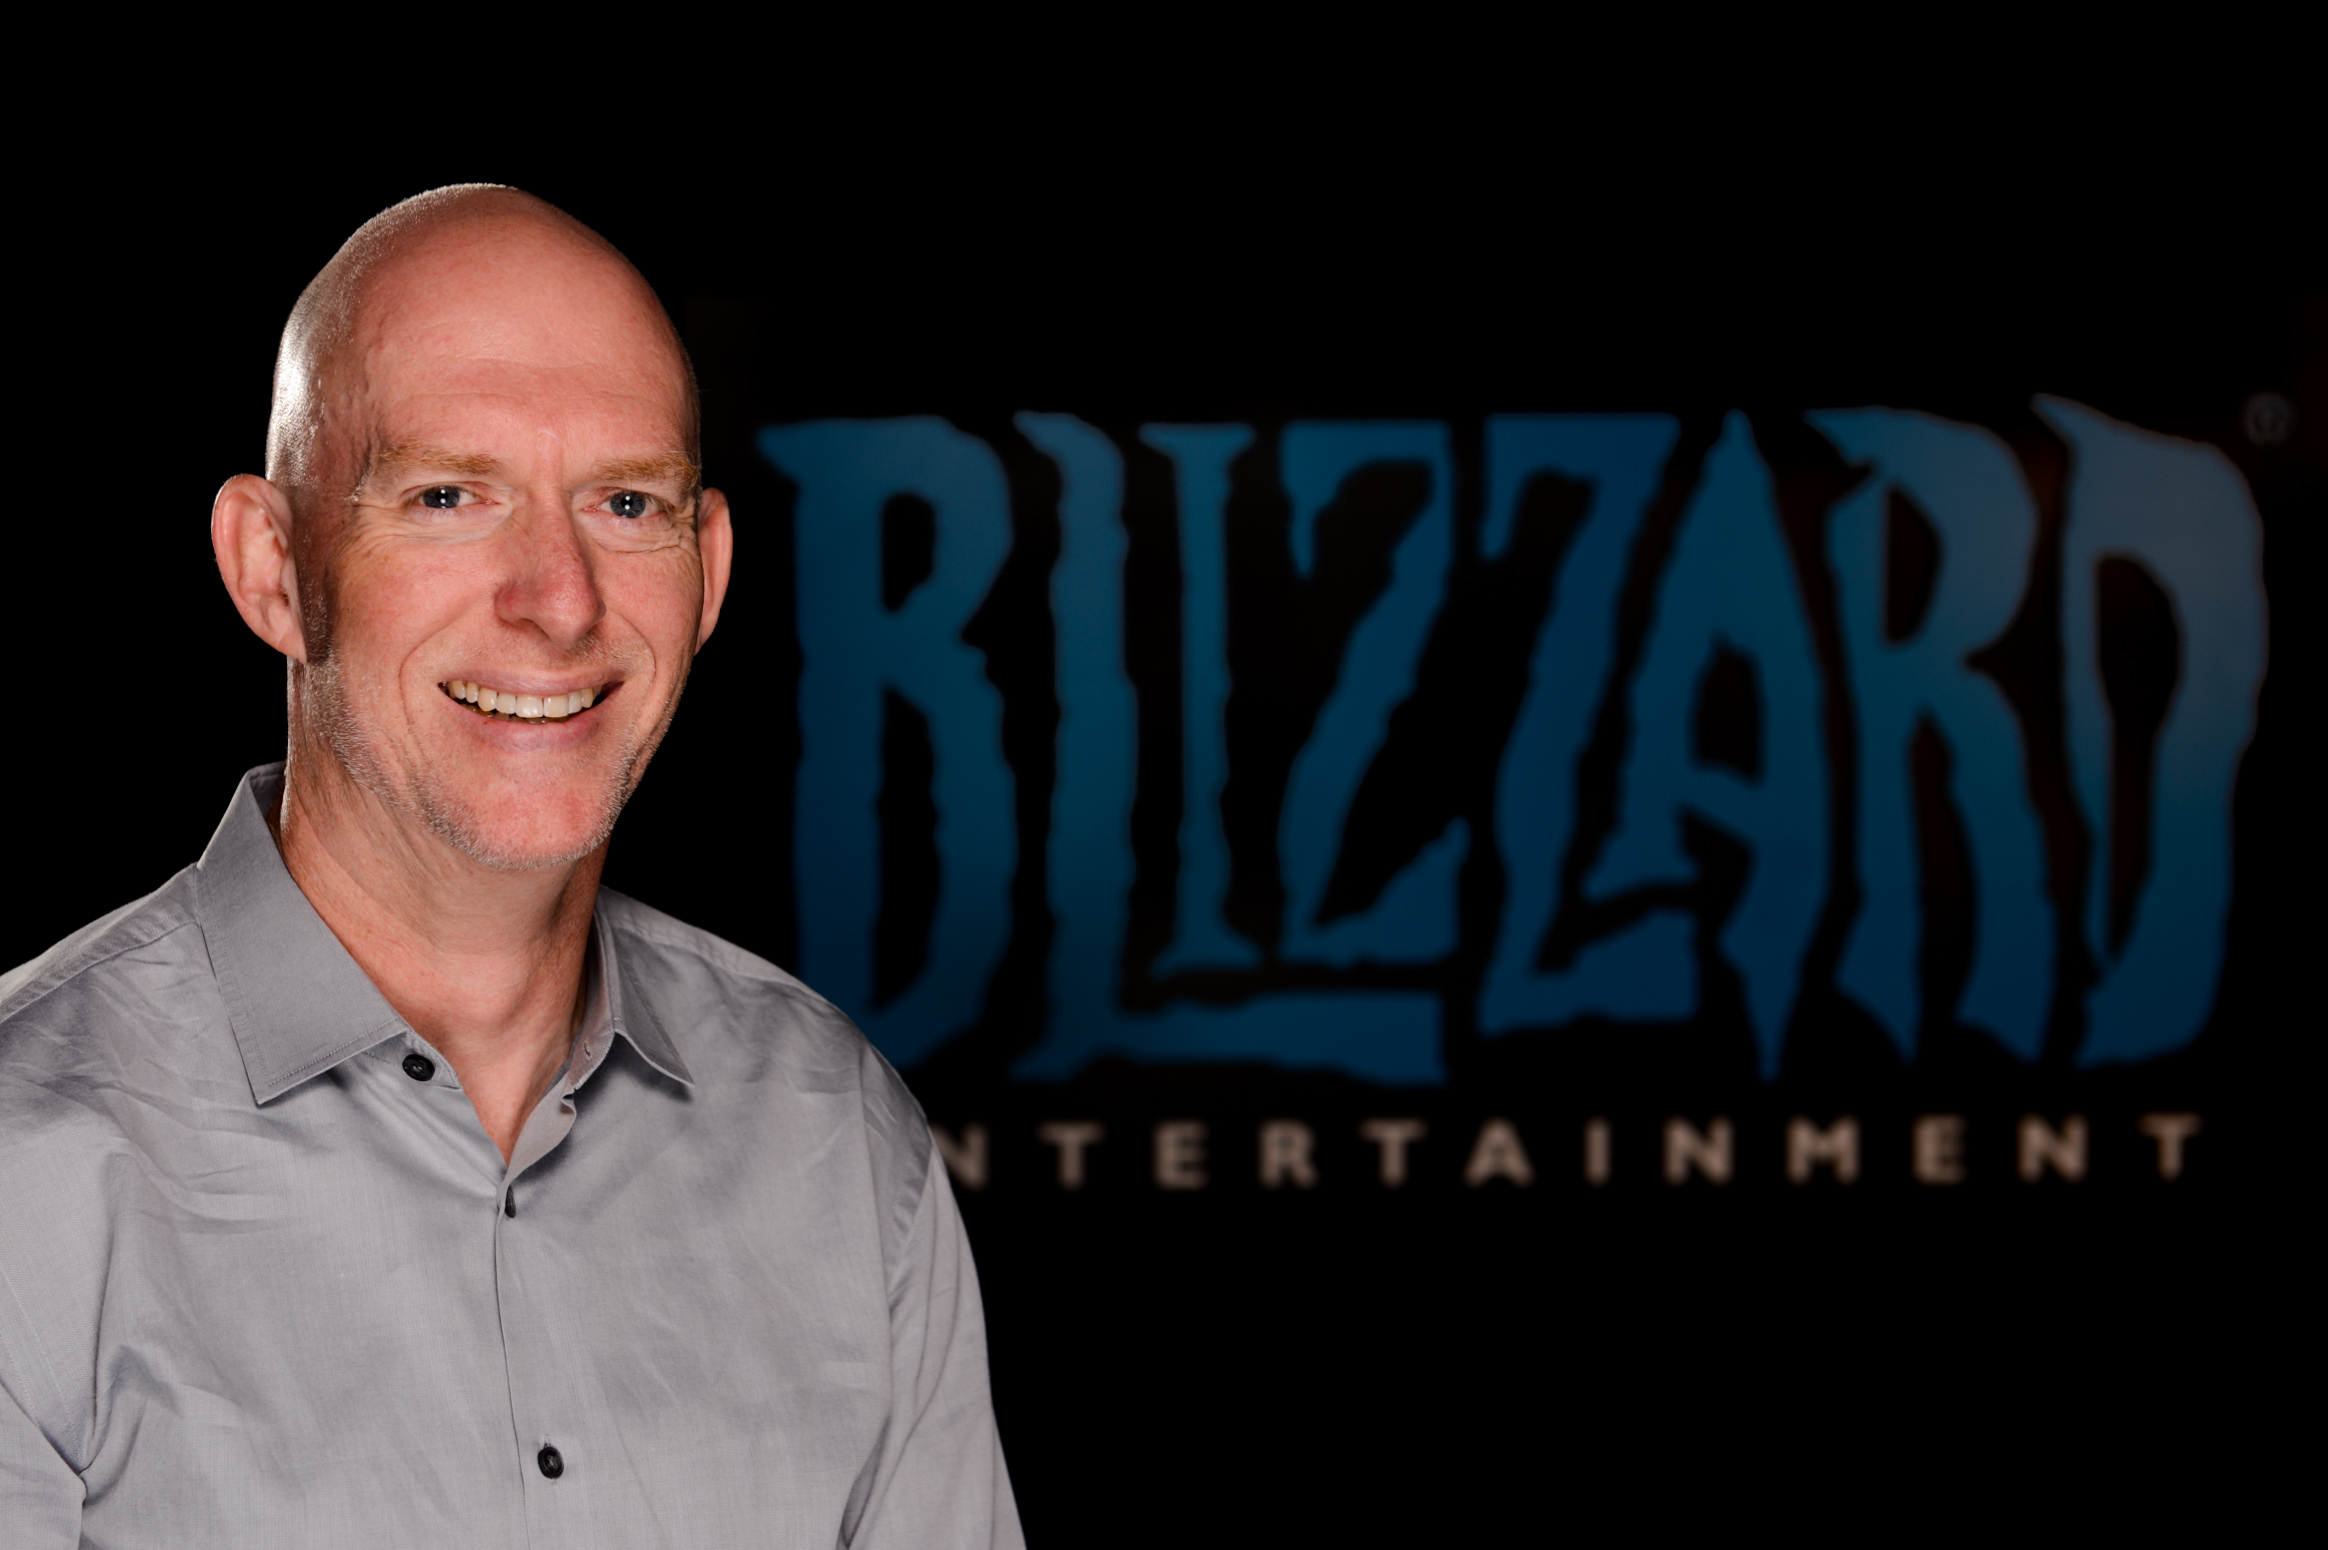 Photo of Blizzard co-founder Frank Pearce sitting in front of a darkened company logo